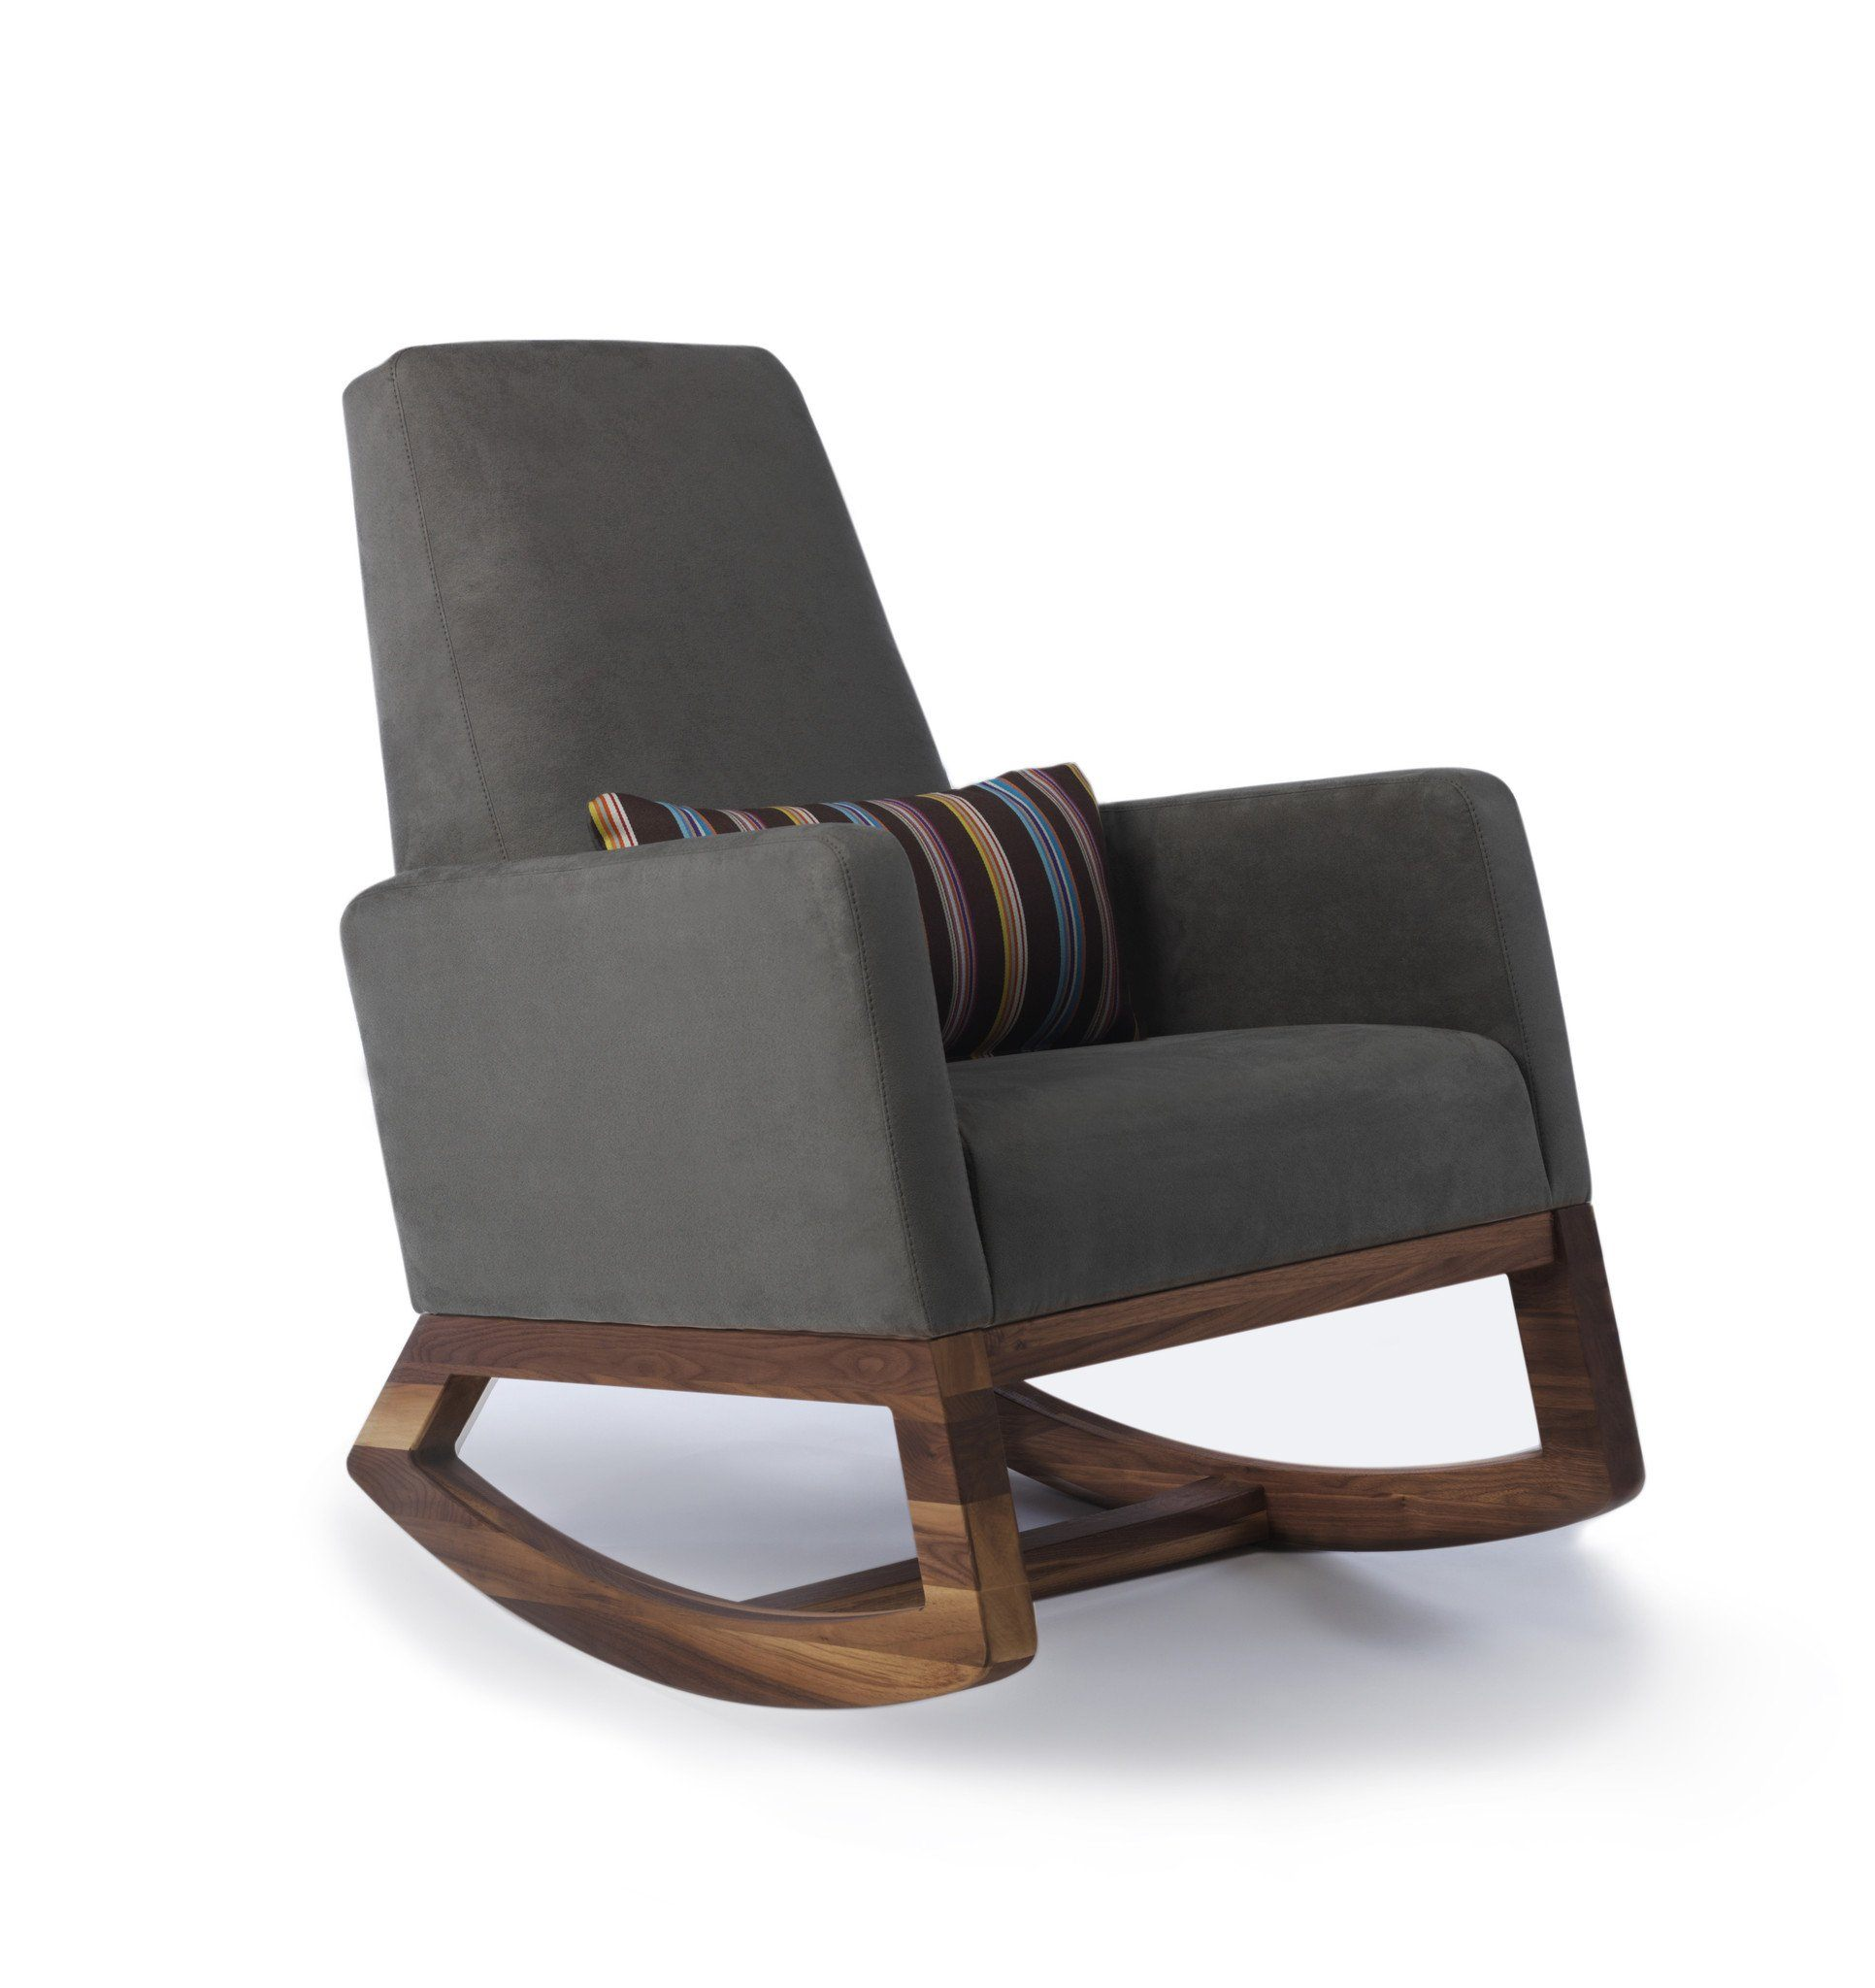 Rocking Chair And Nap Sofa By Missonihome: Project Nursery